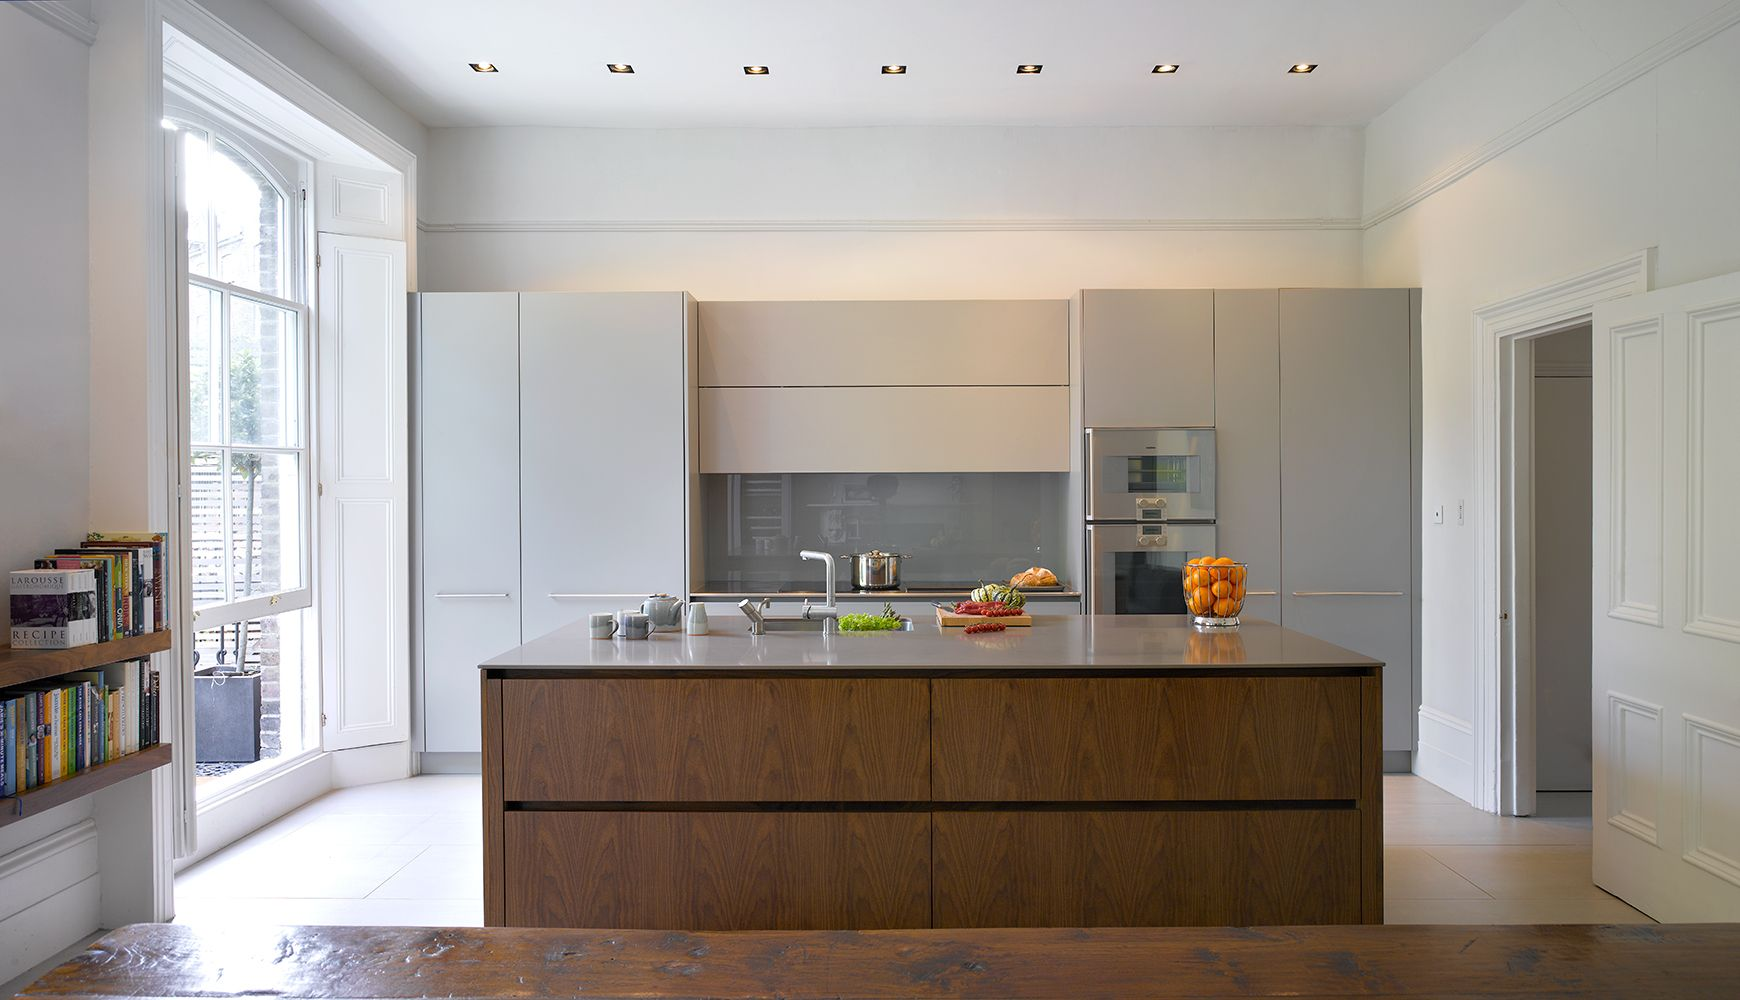 roundhouse urbo matt lacquer kitchen in farrow & ball manor house